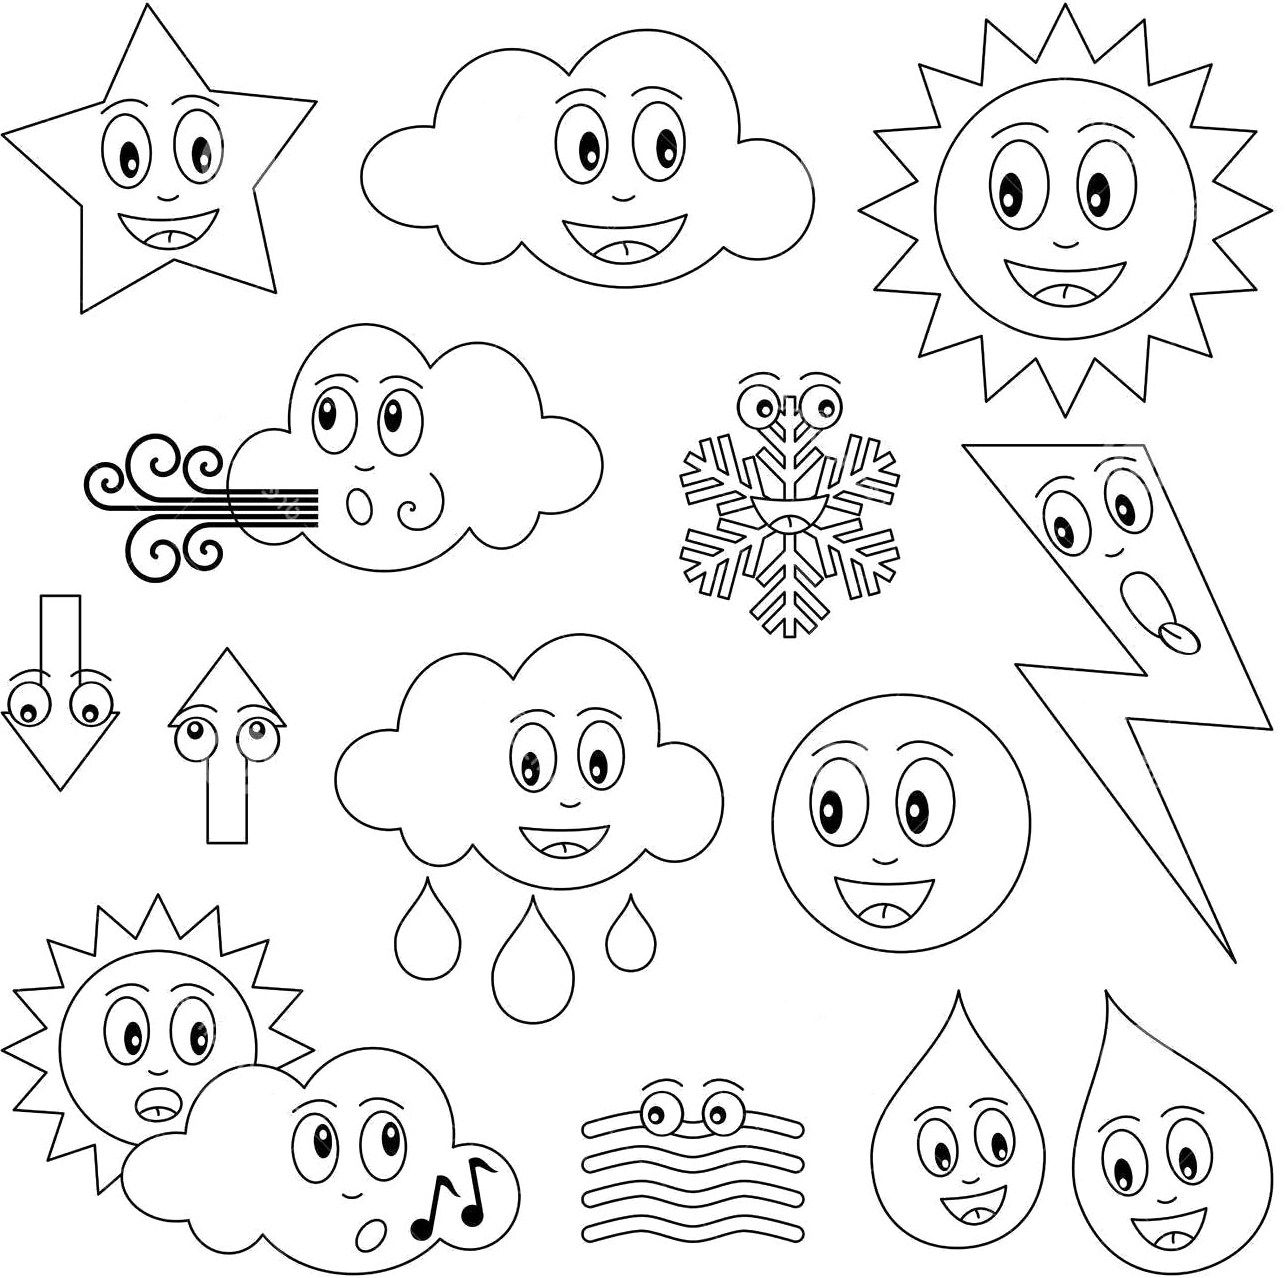 the dismal state of weather coloring page for kids